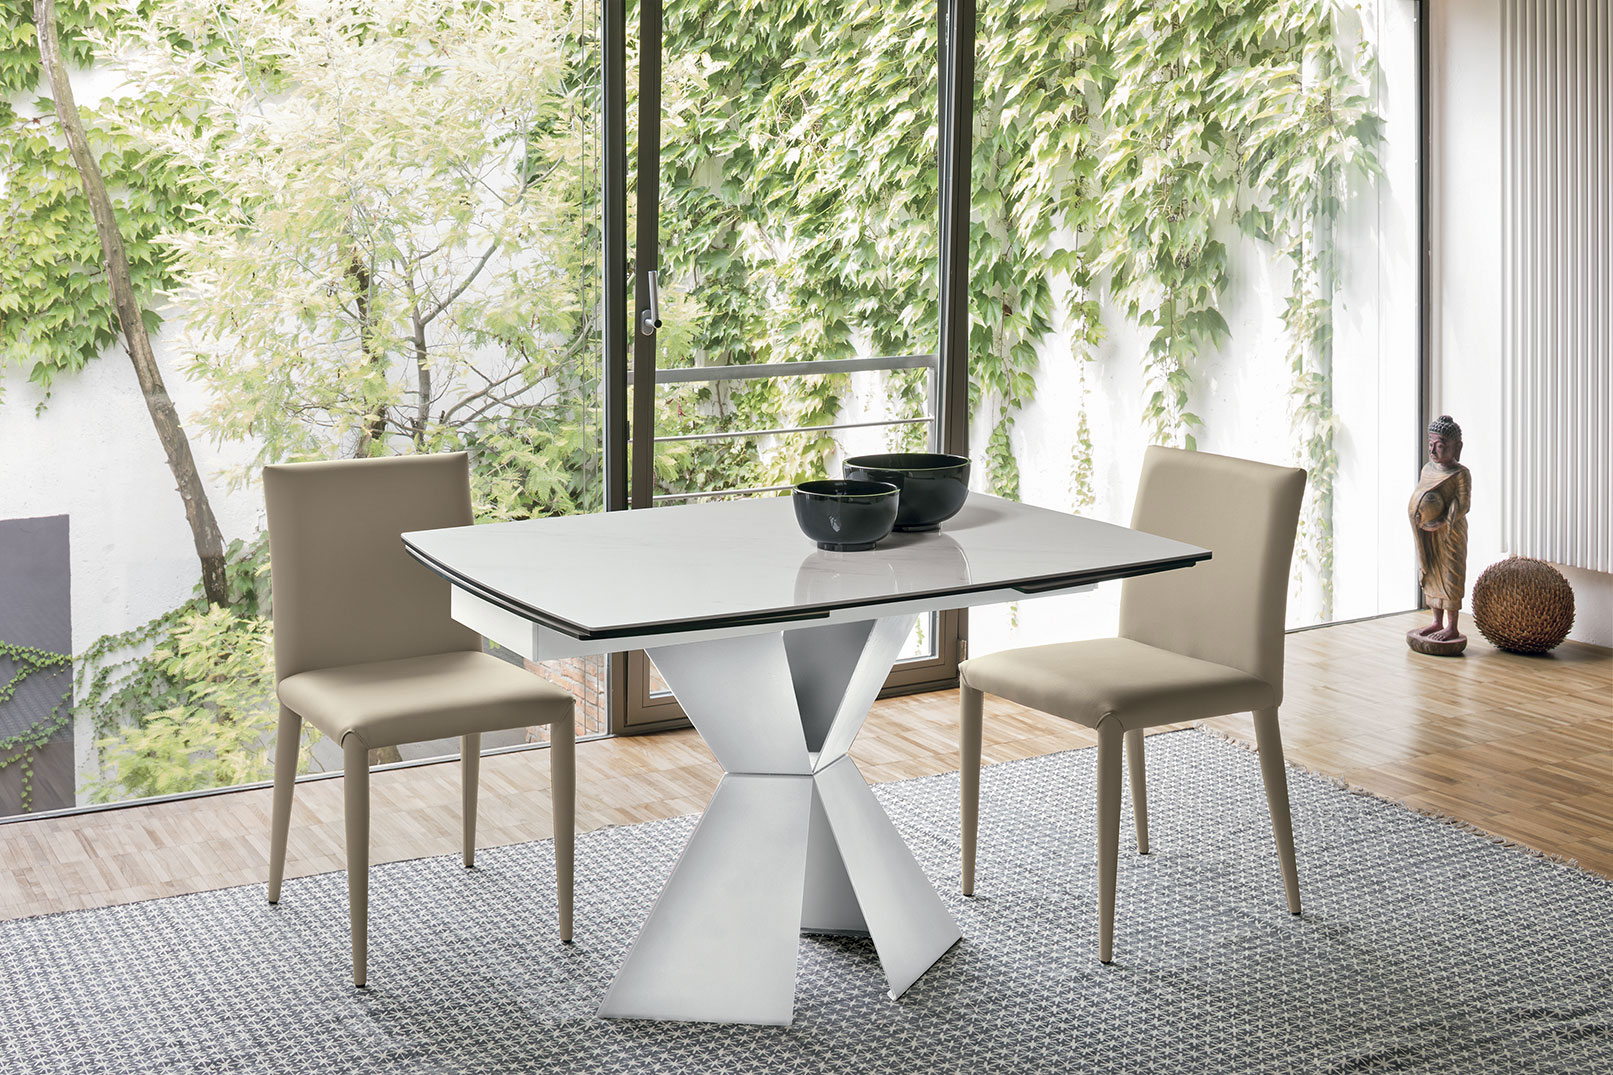 table, modern table, white table, trapezi, chairs,  karekles, dining table, kitchen table, andreotti, andreotti furniture, epipla, furniture, limassol, cyprus